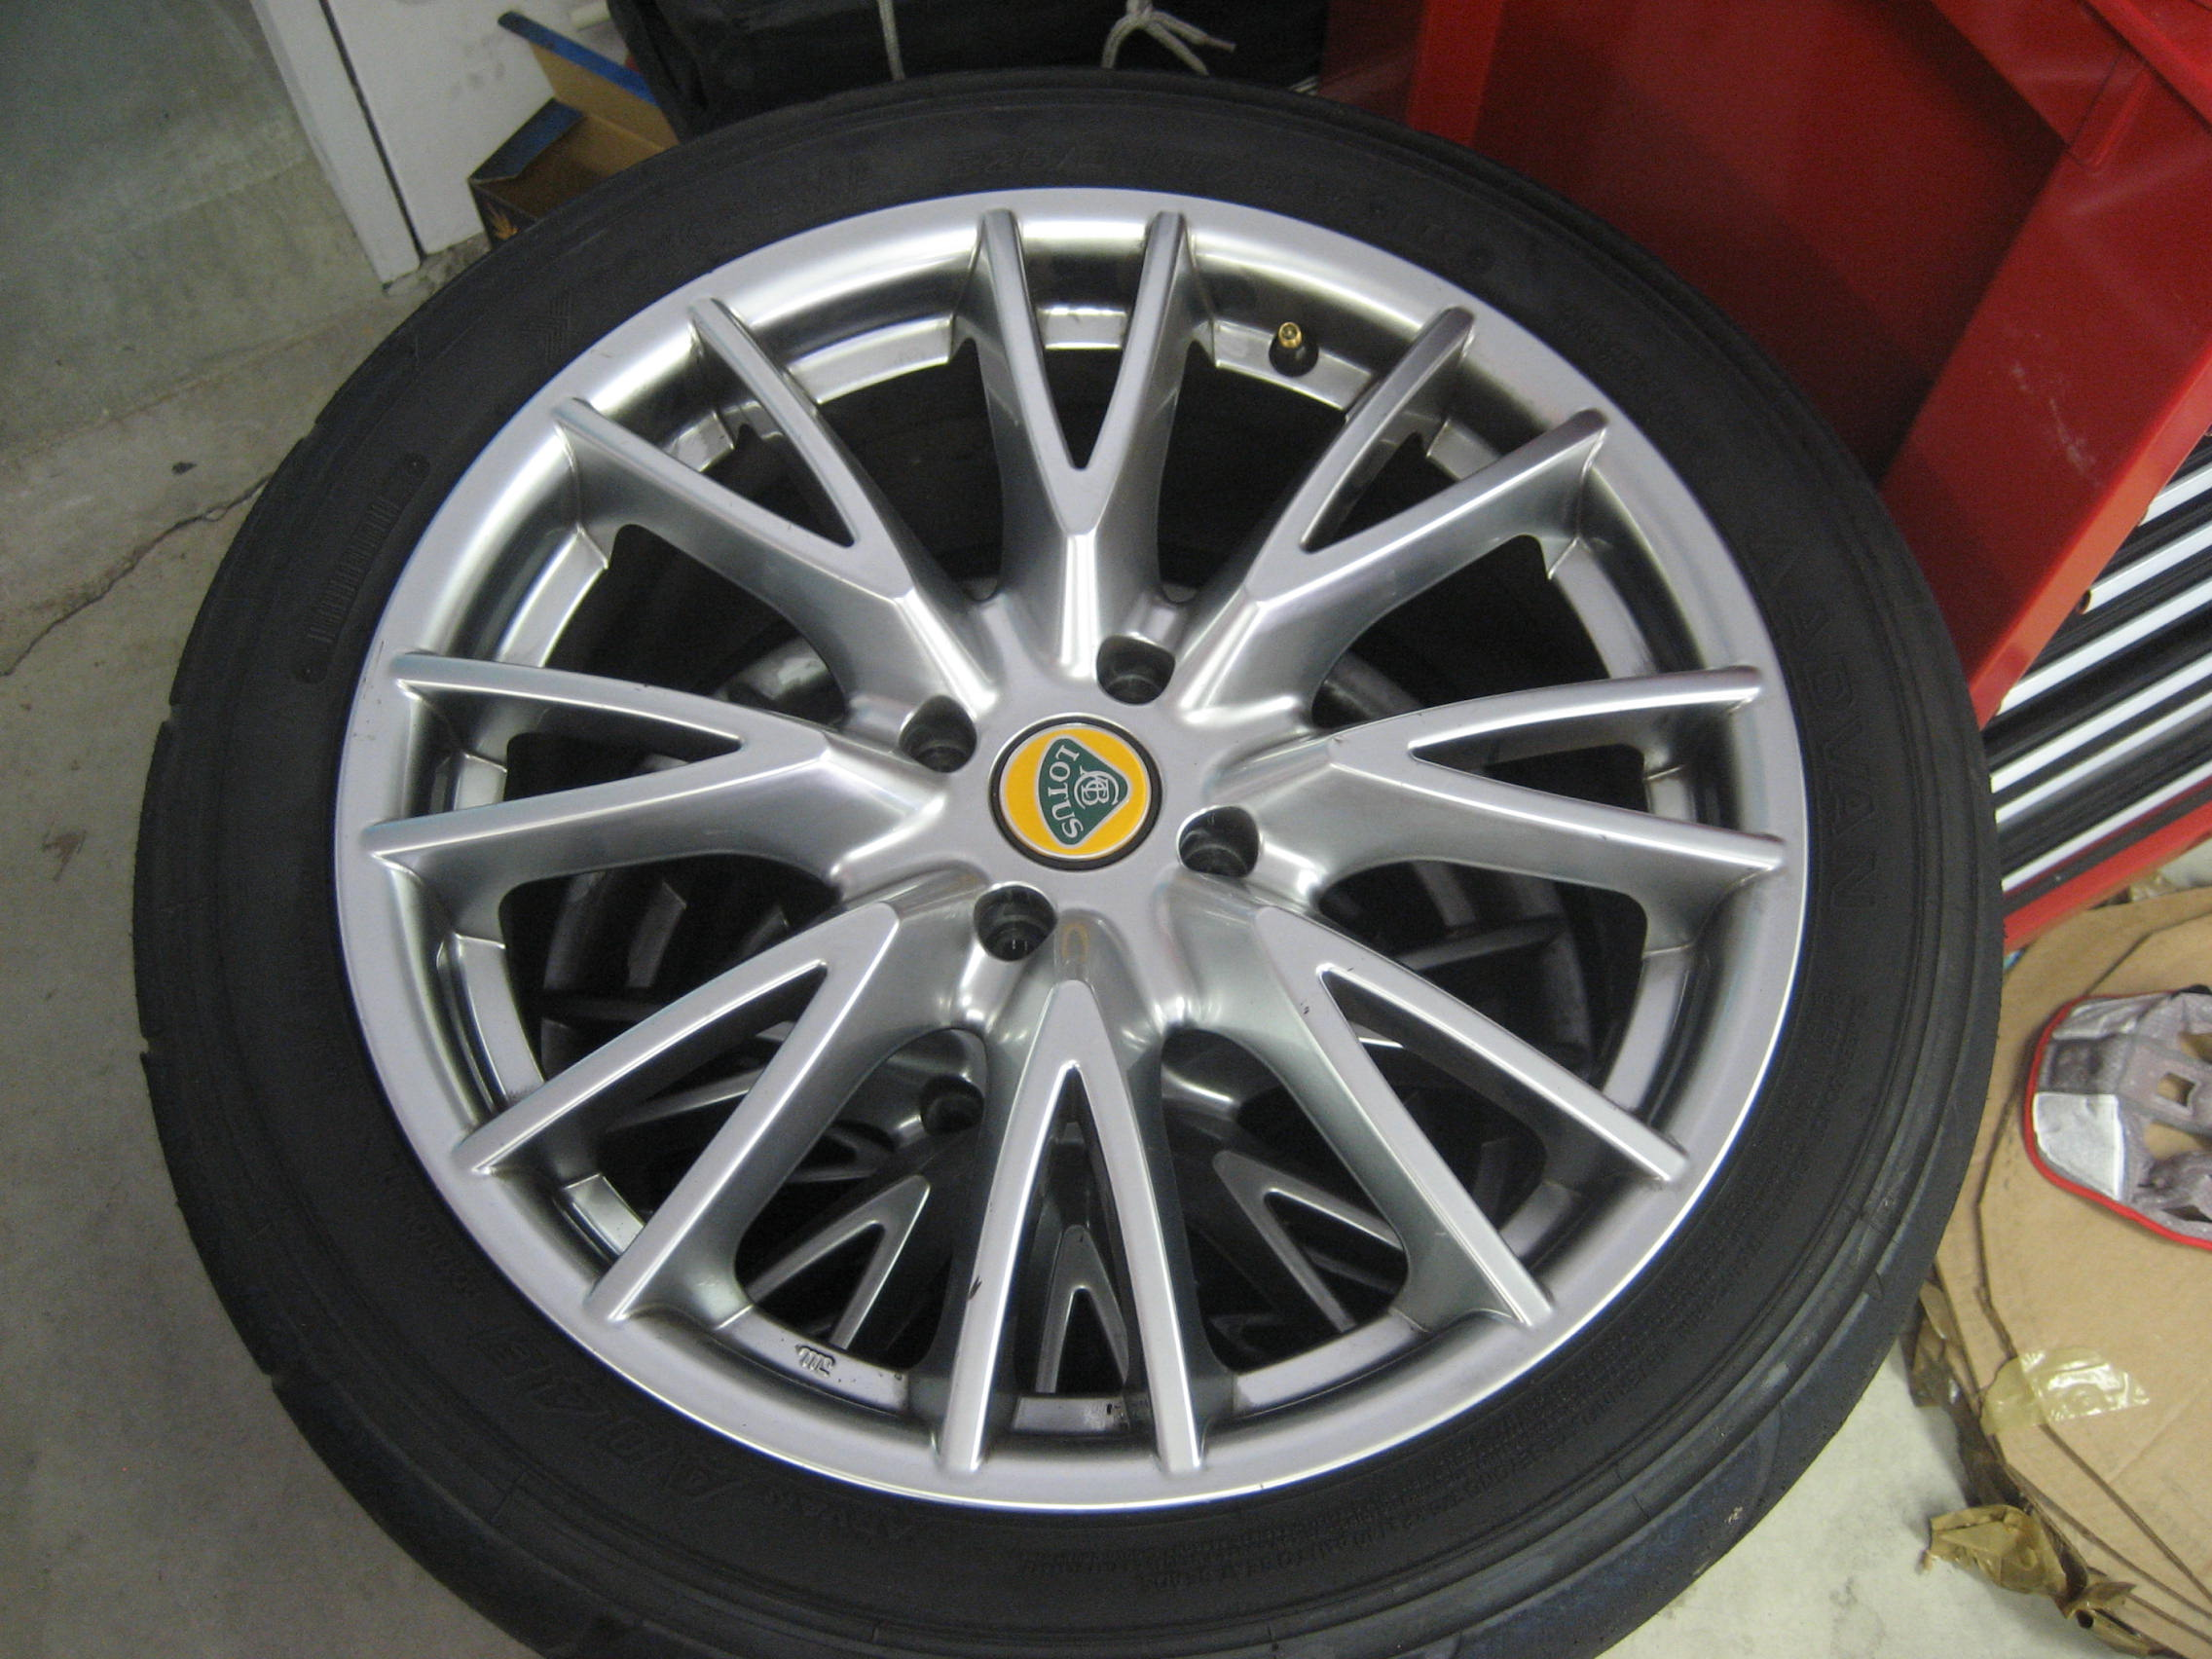 La mia Elise R ice white - Pagina 9 55270d1181027715-fs-lss-wheels-exige-style-img_0002